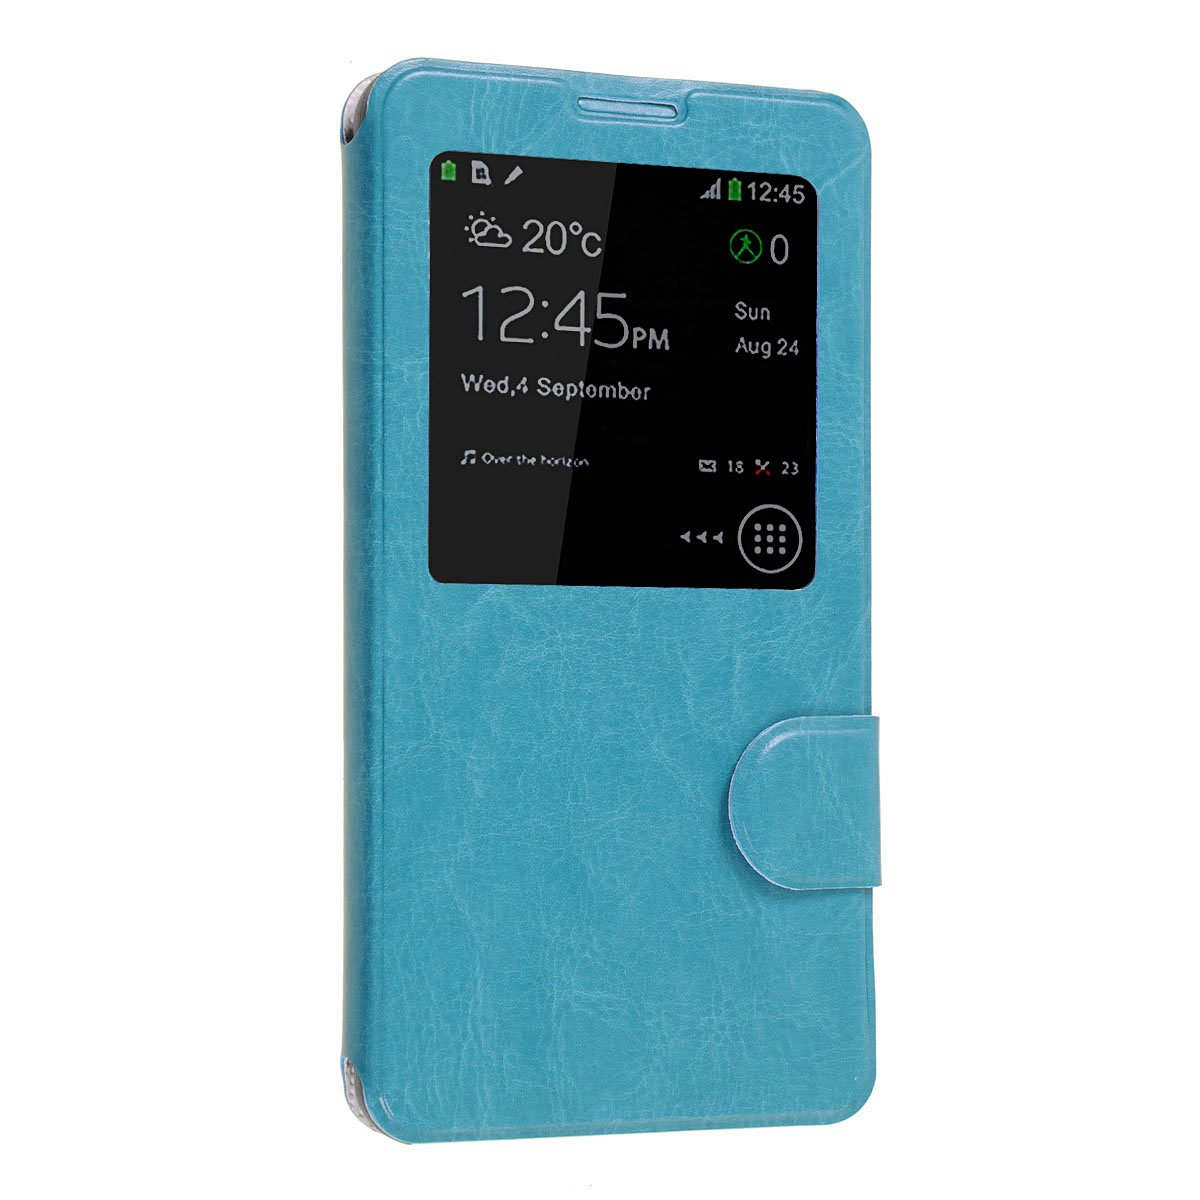 Okeler Hot Light Blue S-View Flip Cover Leather Case